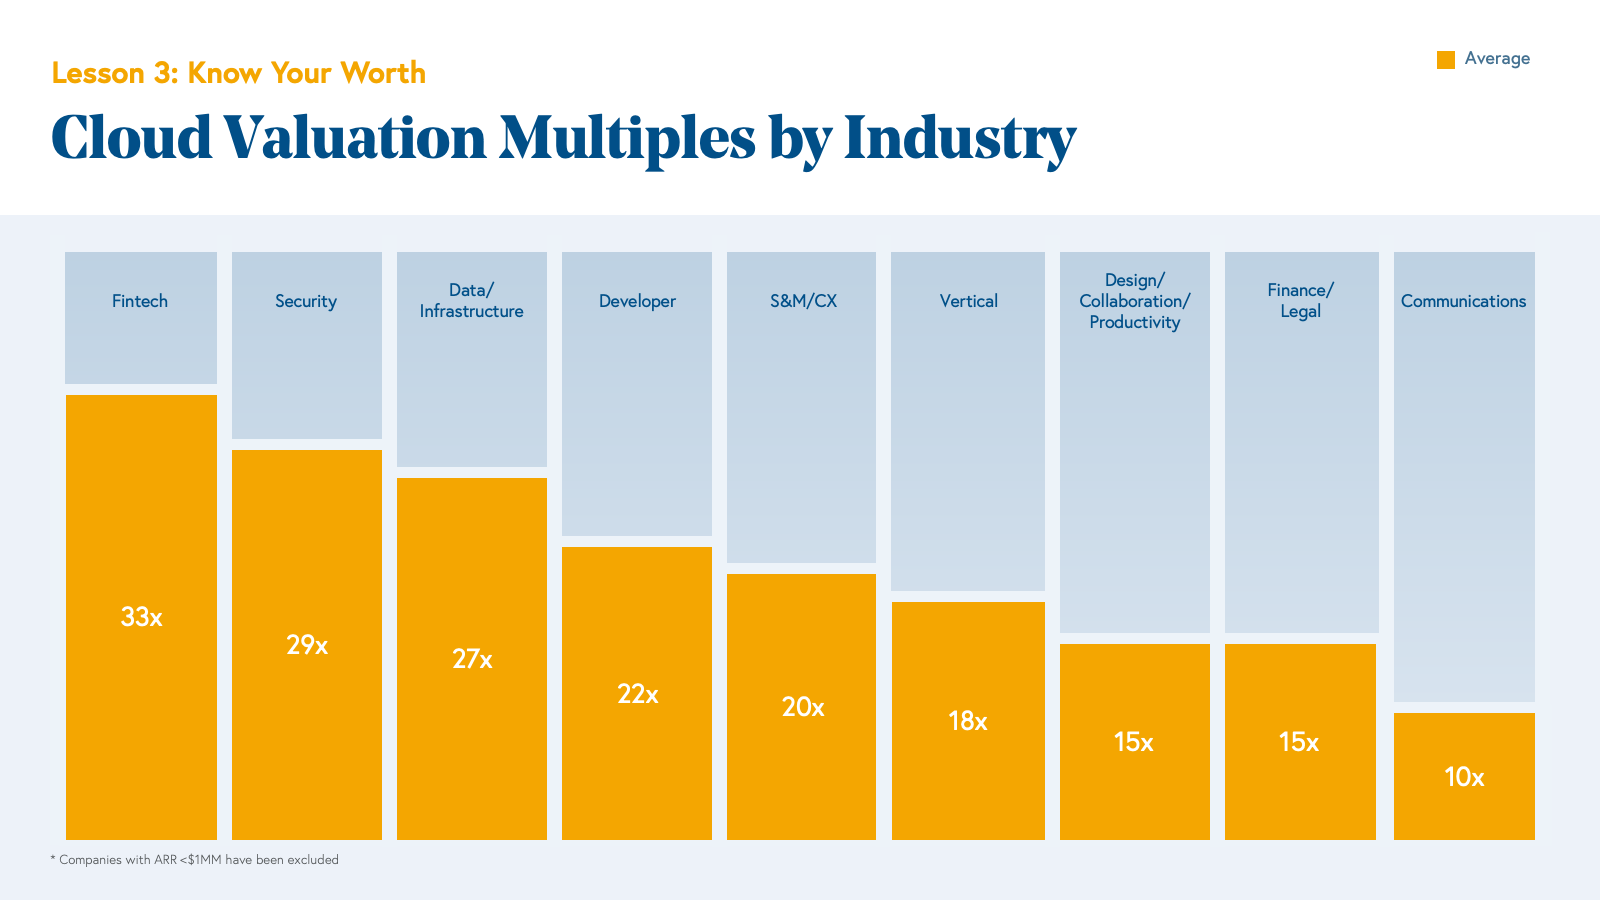 Cloud Valuation Multiples by Industry Chart